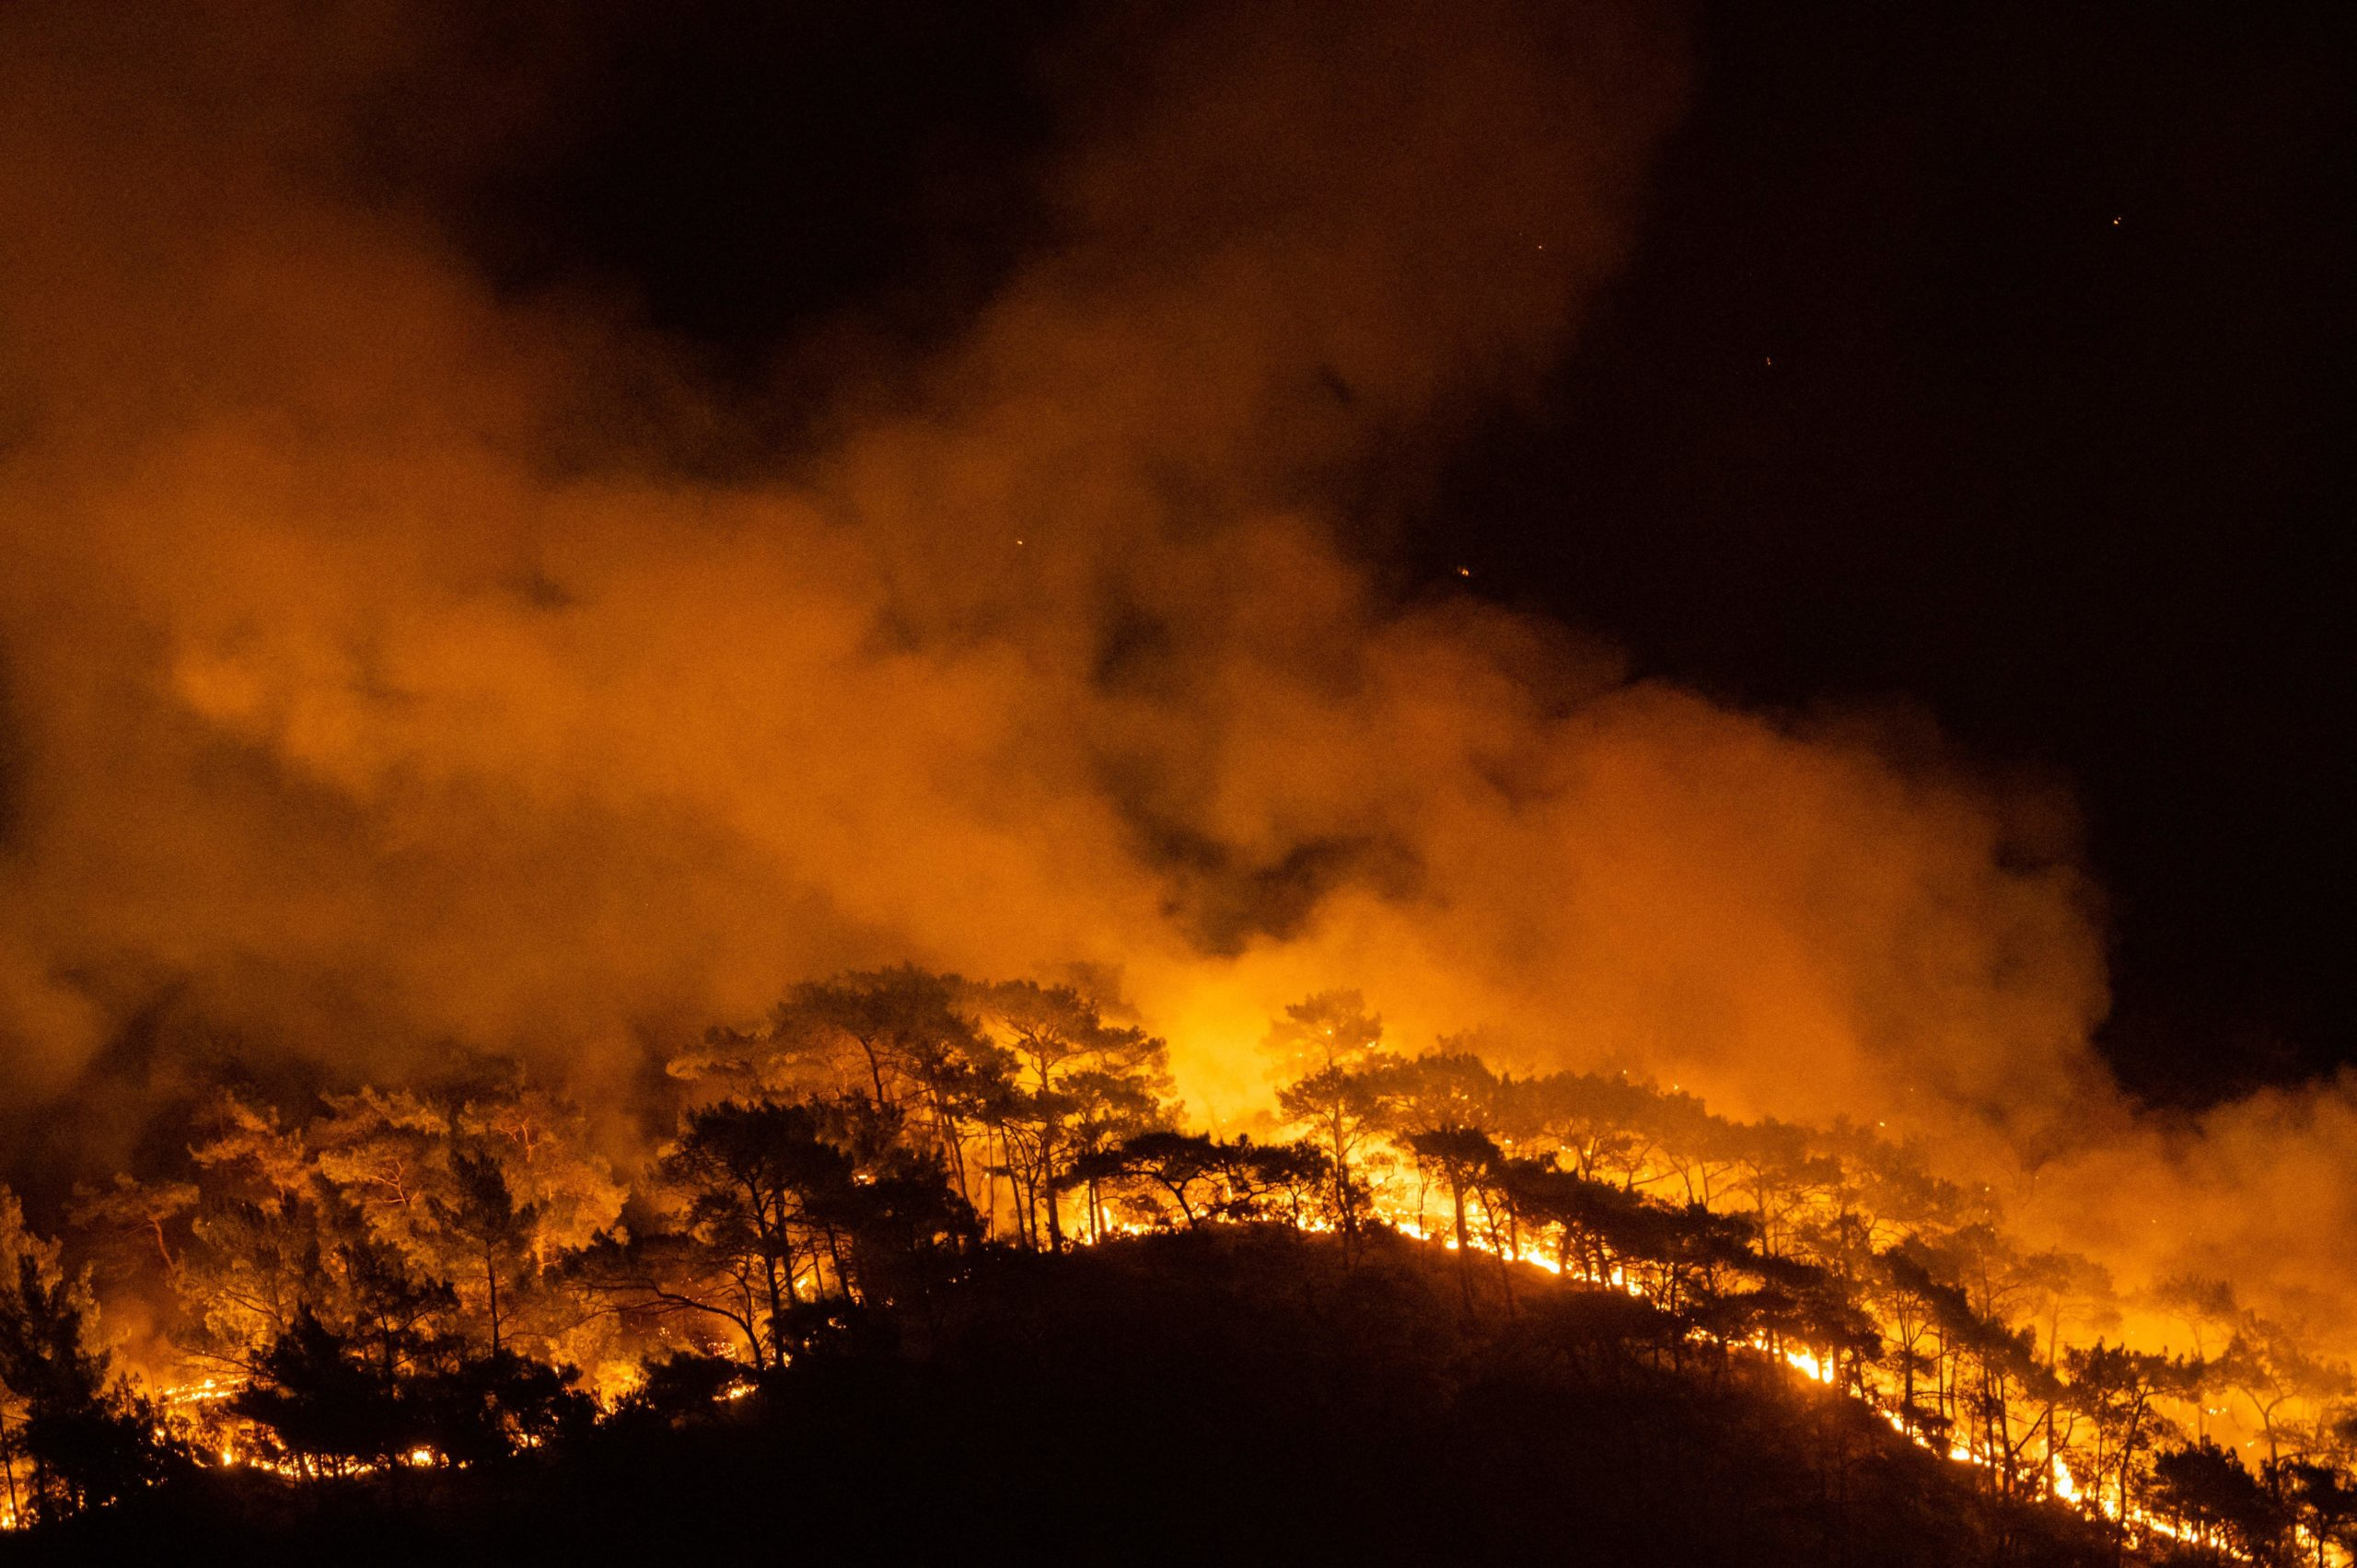 This photograph shows a forest burning as a massive wildfire engulfed a Mediterranean resort at the Marmaris district of Mugla, on August 1 2021. - At least three people were reported dead on July 29, 2021 and more than 100 injured as firefighters battled blazes engulfing a Mediterranean resort region on Turkey's southern coast. (Photo by YASIN AKGUL/AFP via Getty Images)